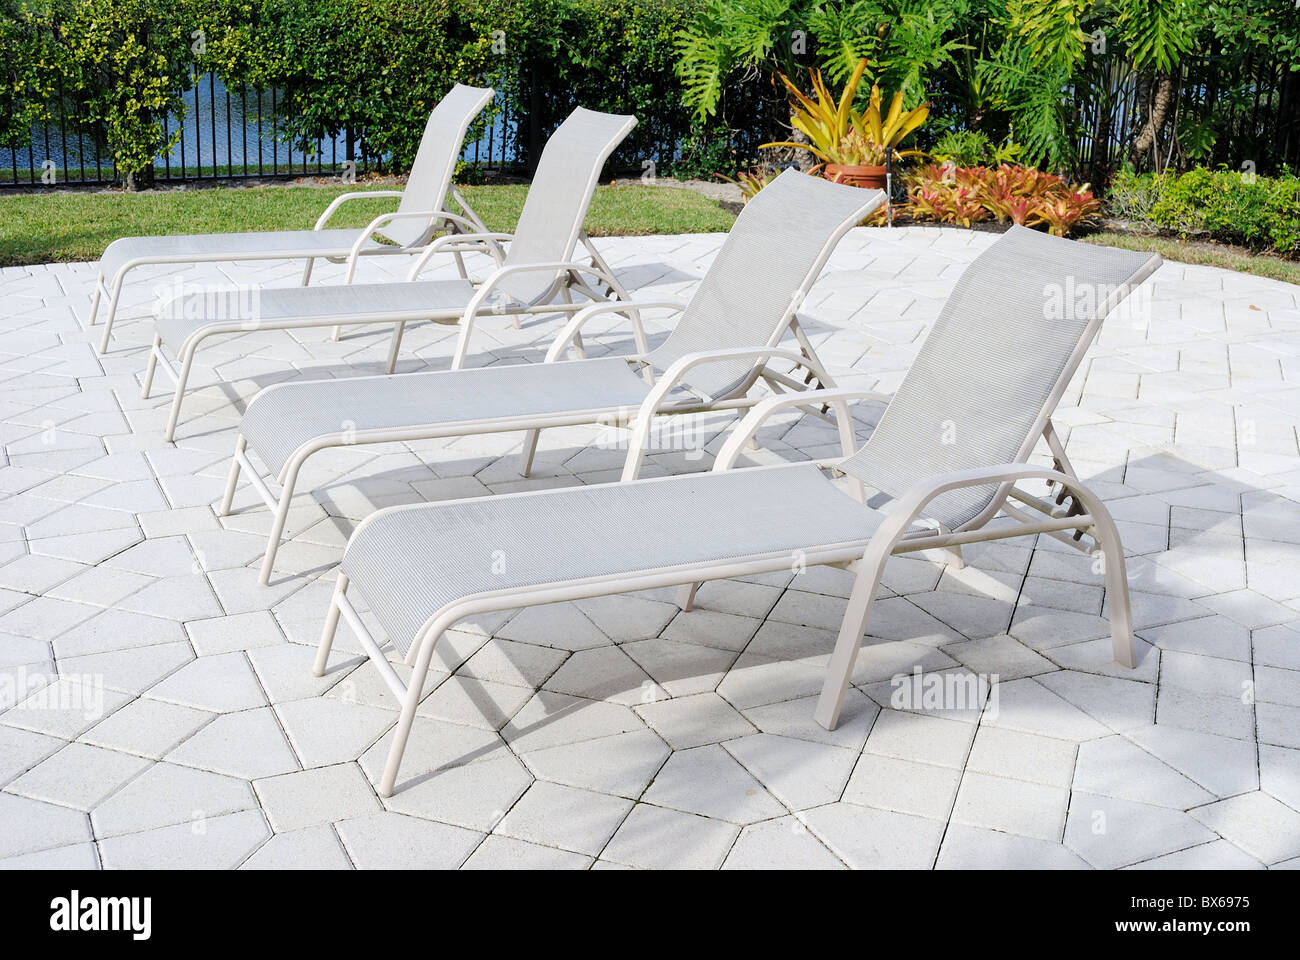 A deck with chairs - Stock Image